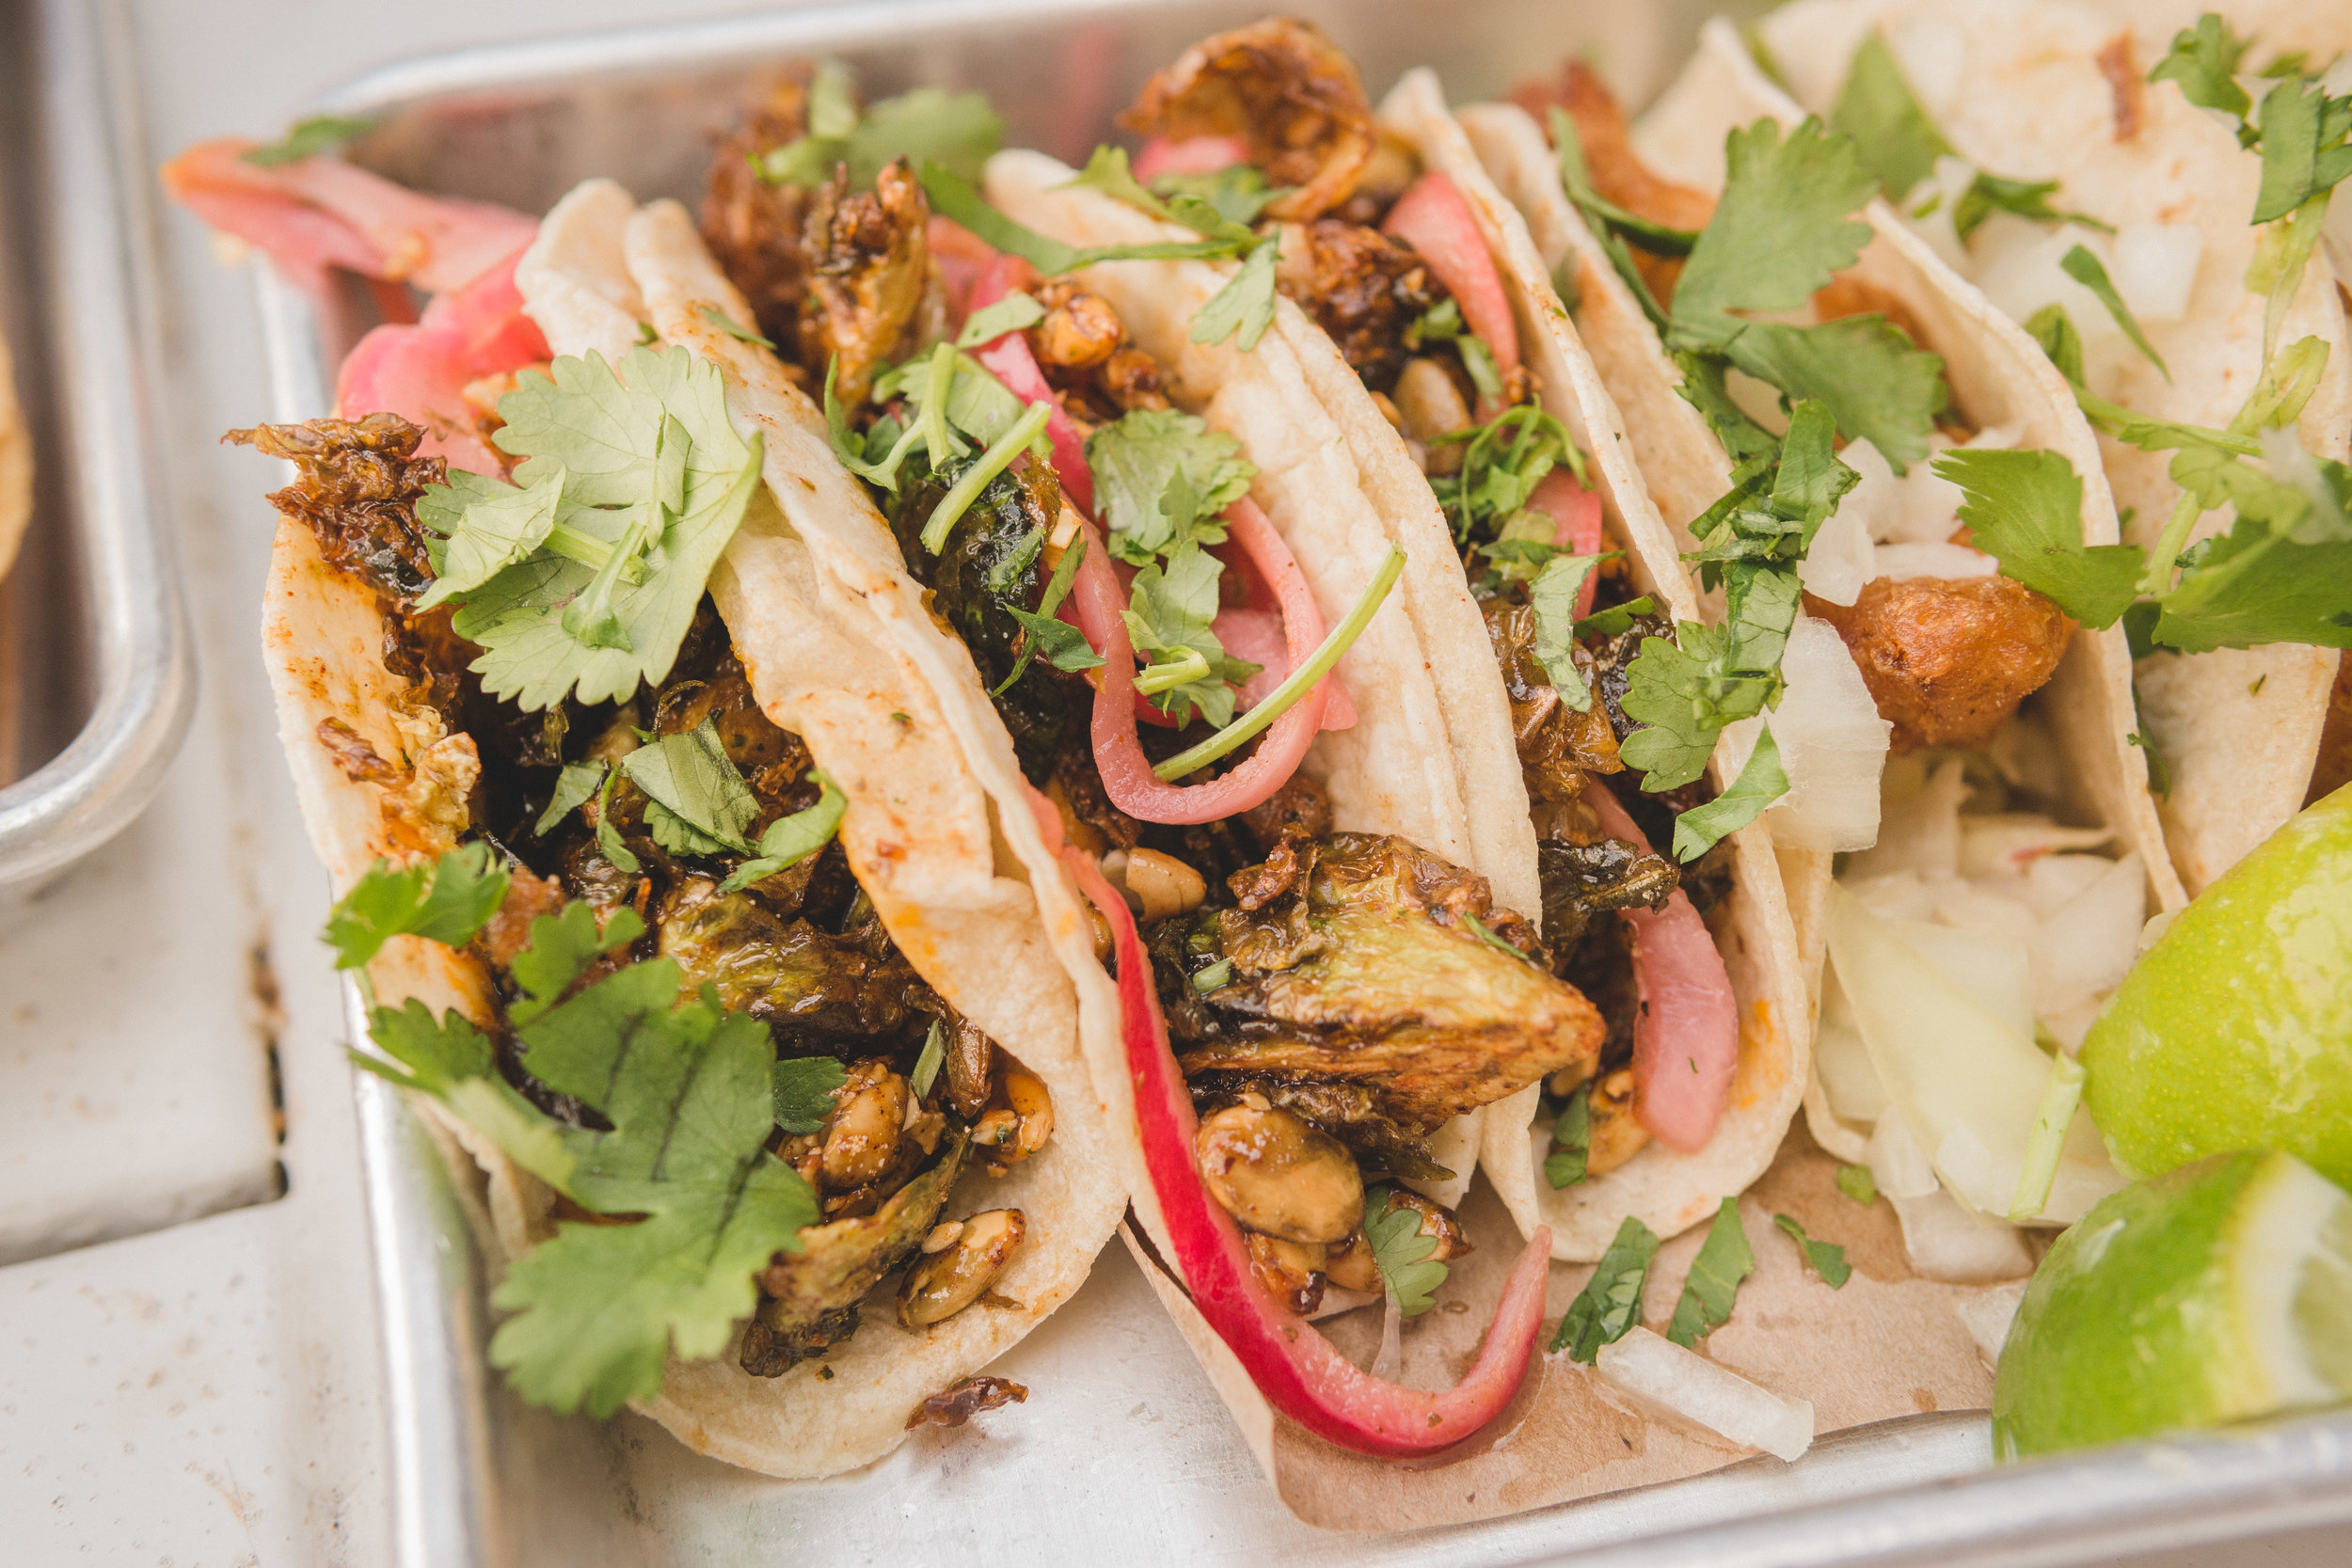 The latest secret taco - Crispy Brussels Sprouts: honey chipotle glazed crispy brussels sprouts served on a bed of spicy curry carrot puree and garnished with candied pepitas and pickled onions.